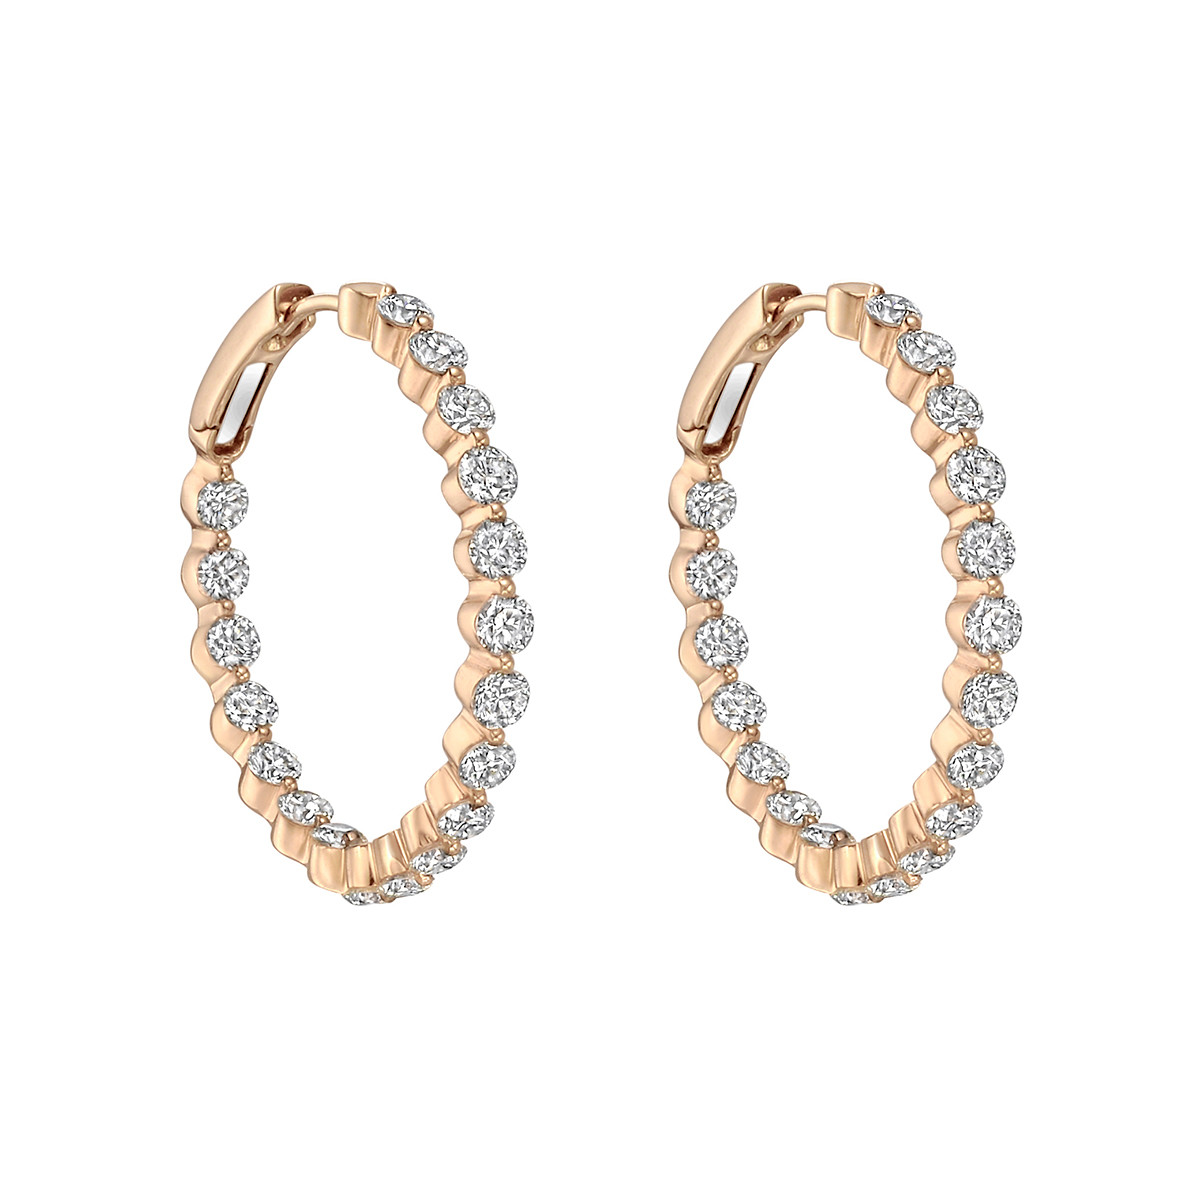 18k Pink Gold & Diamond Hoop Earrings